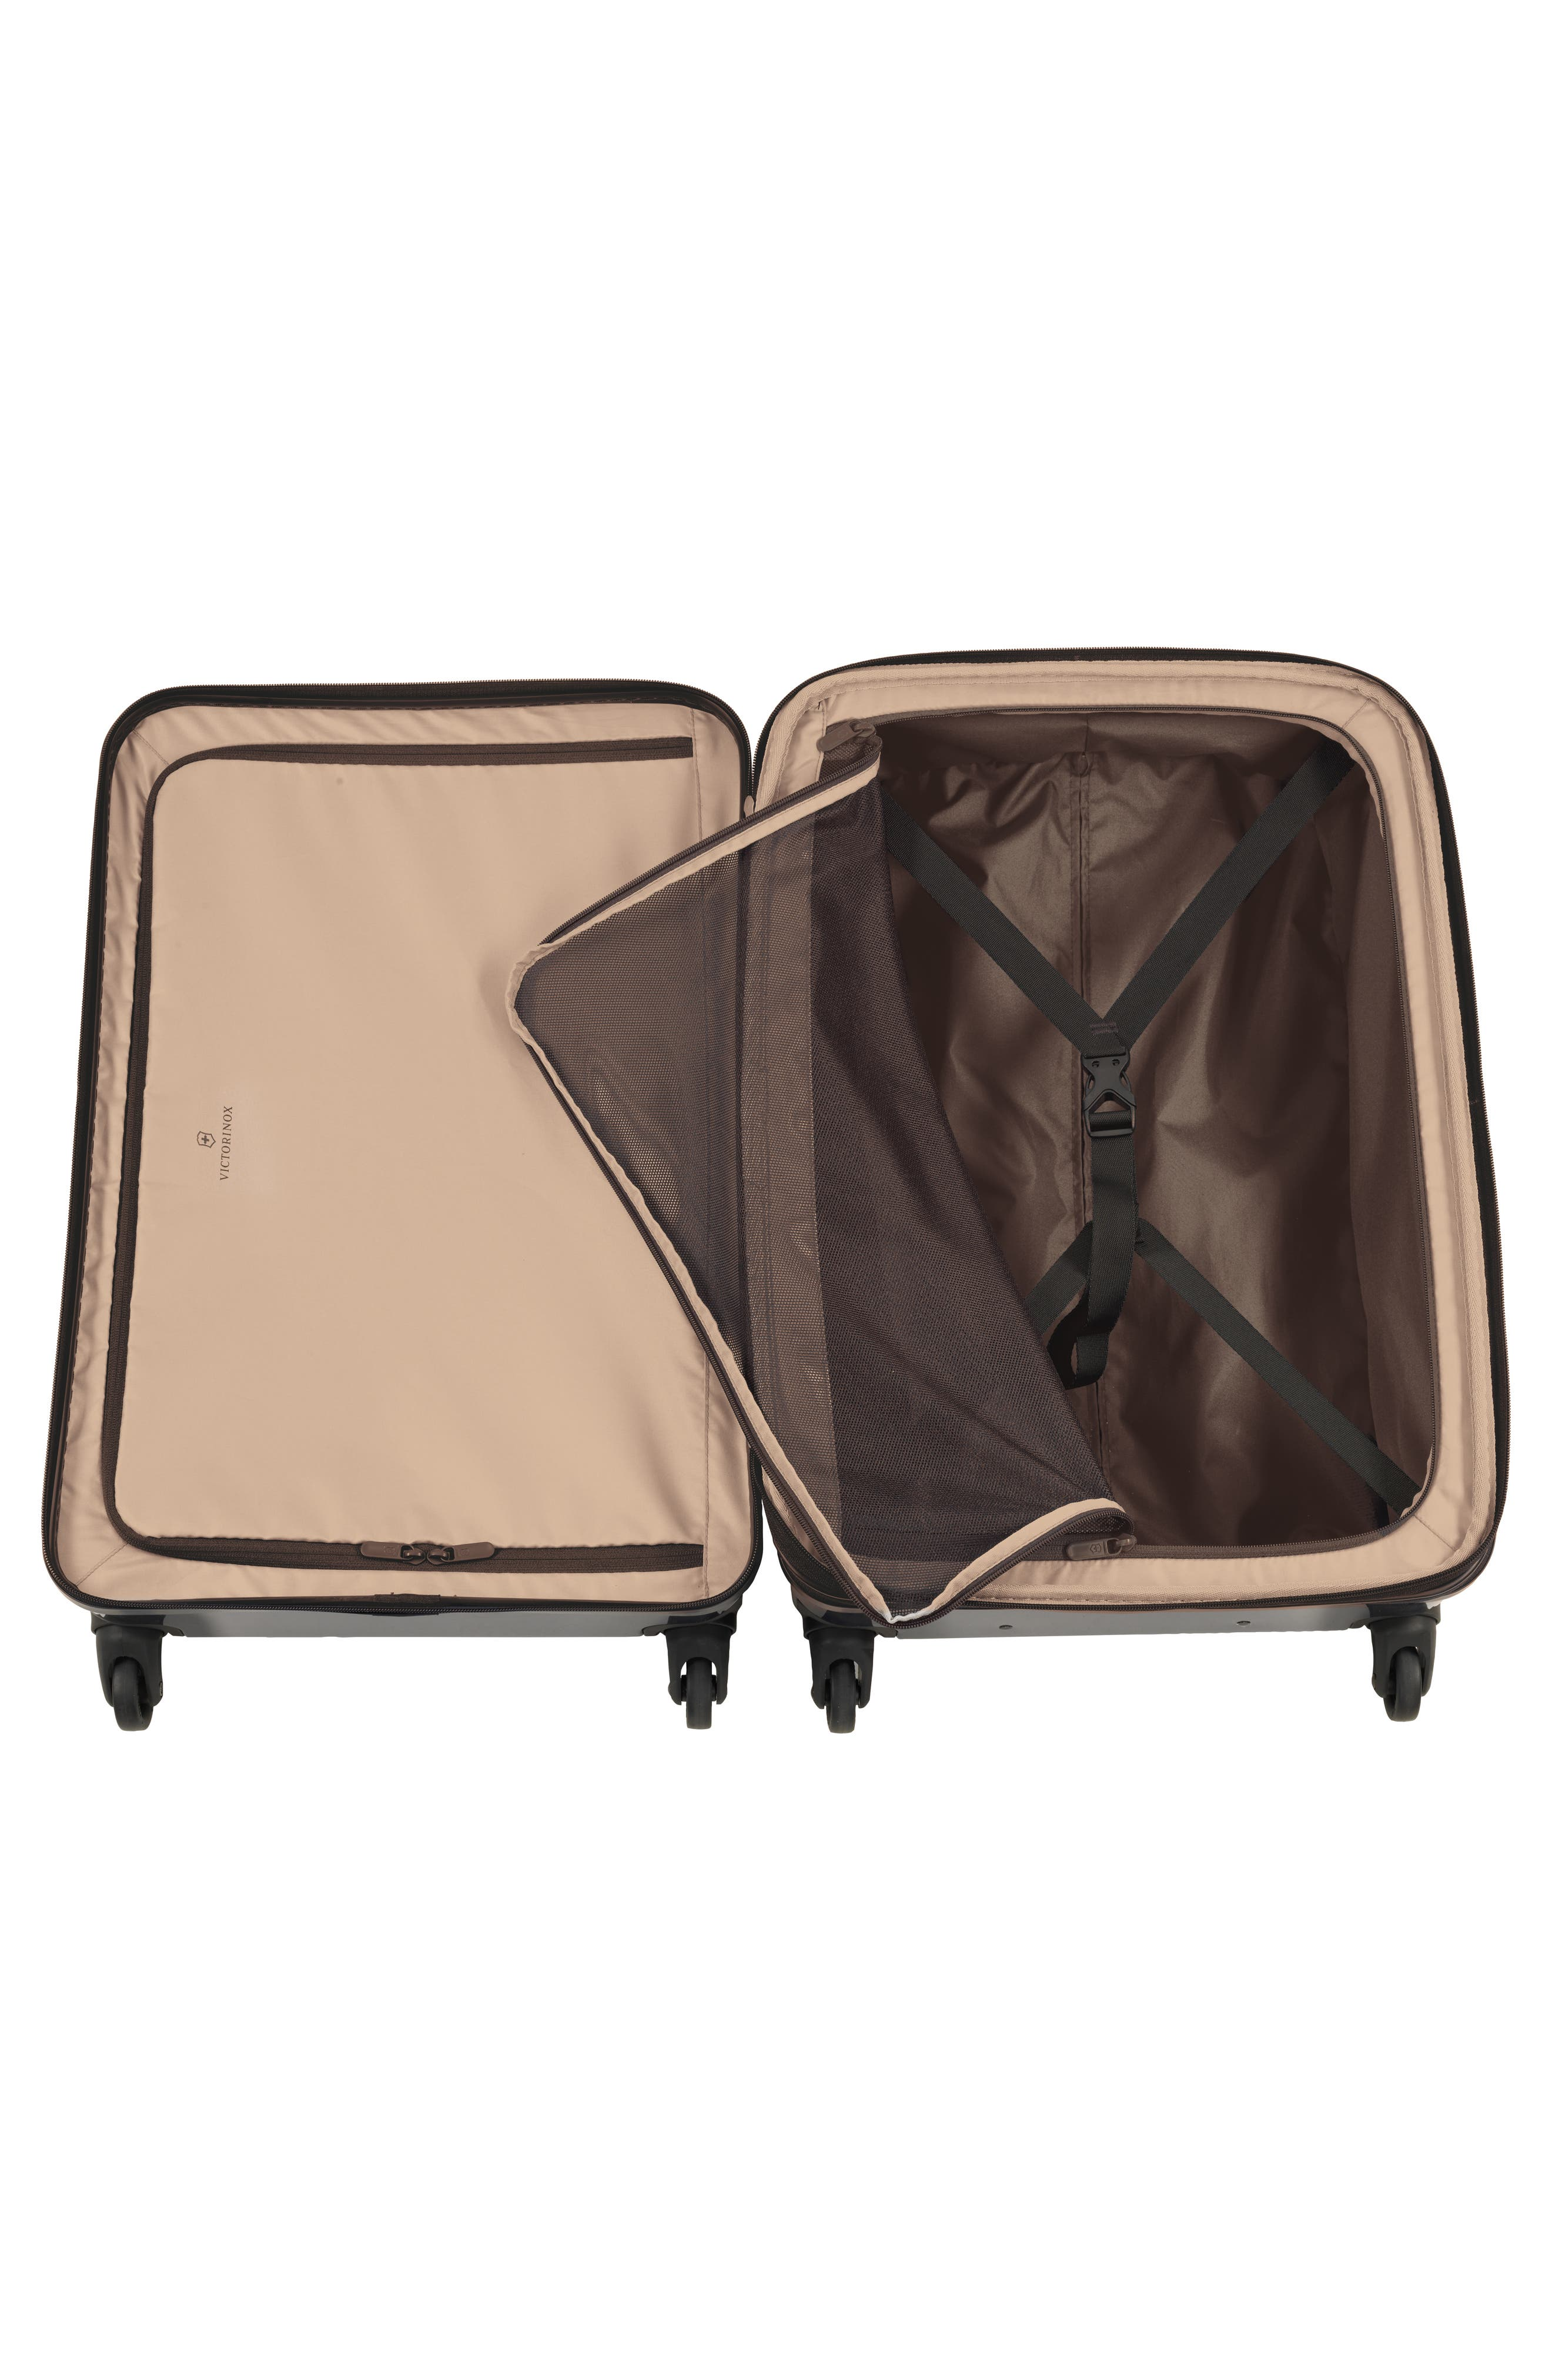 Etherius 26-Inch Wheeled Suitcase,                             Alternate thumbnail 2, color,                             Bronze